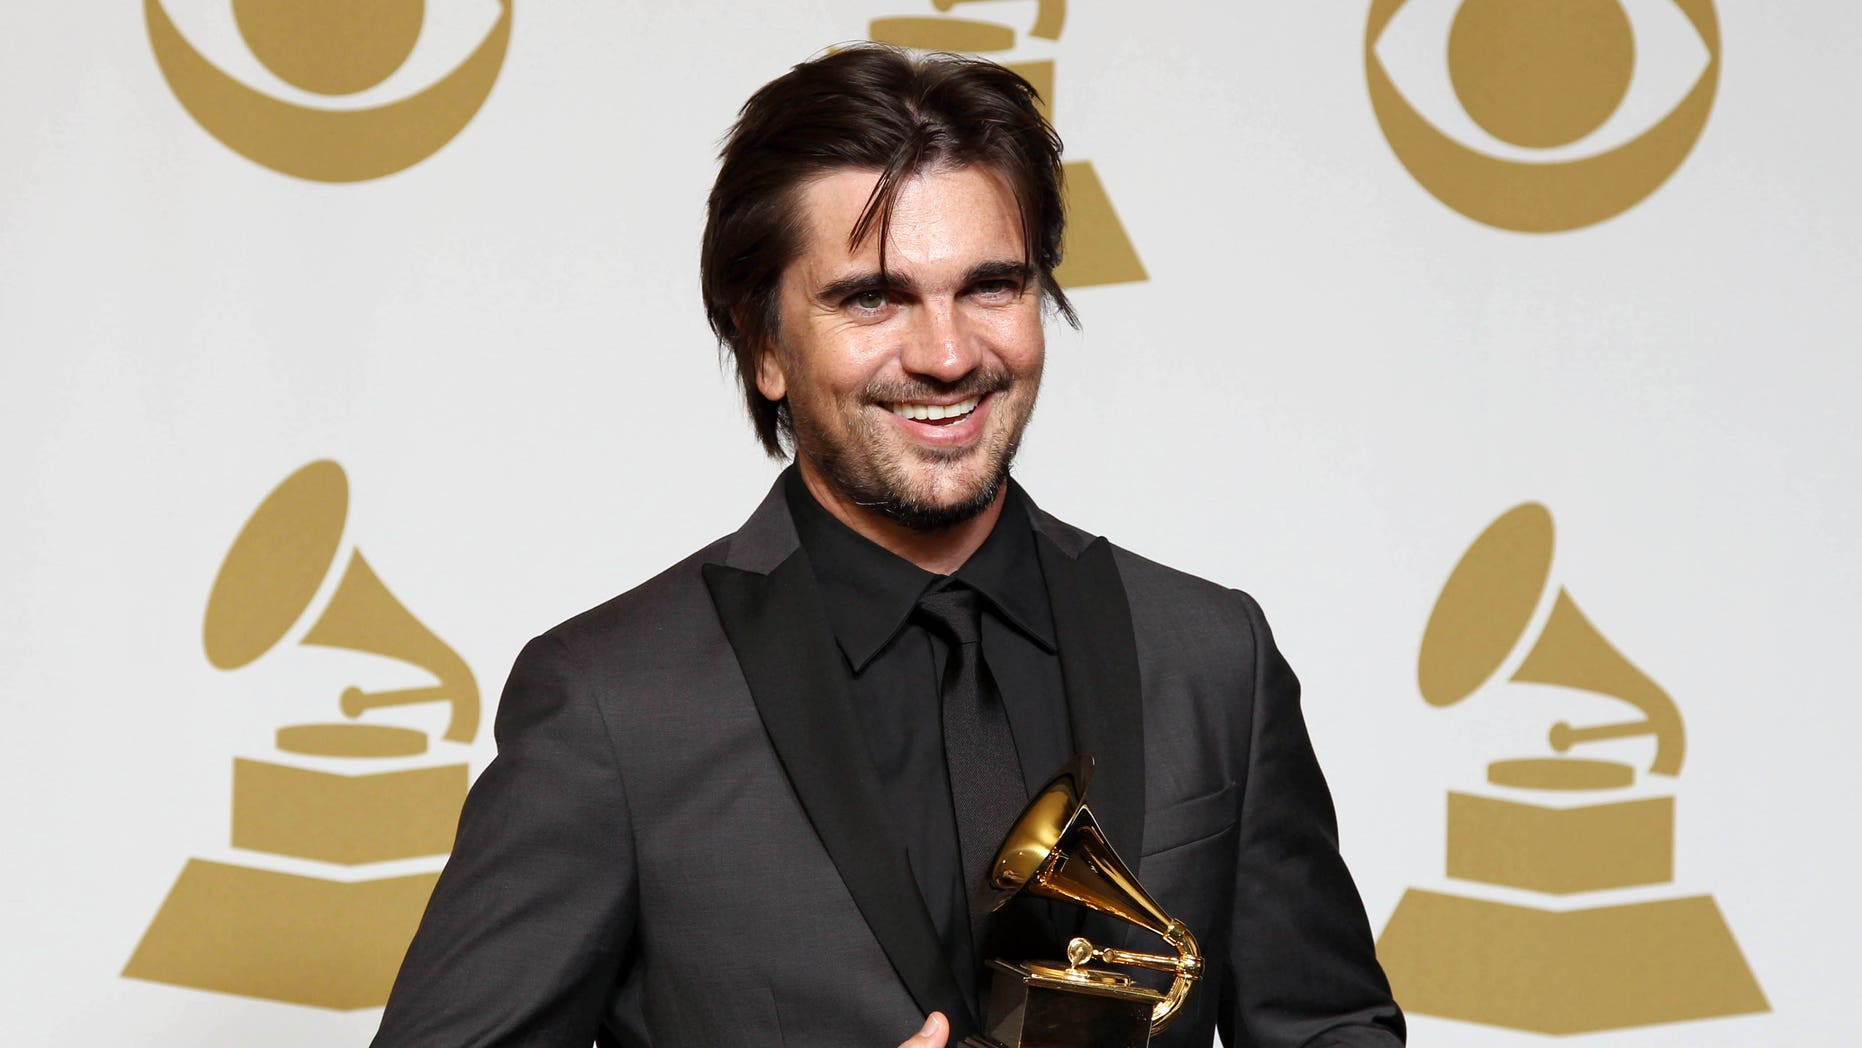 Juanes at the 55th annual Grammy Awards on Sunday, Feb. 10, 2013, in Los Angeles.